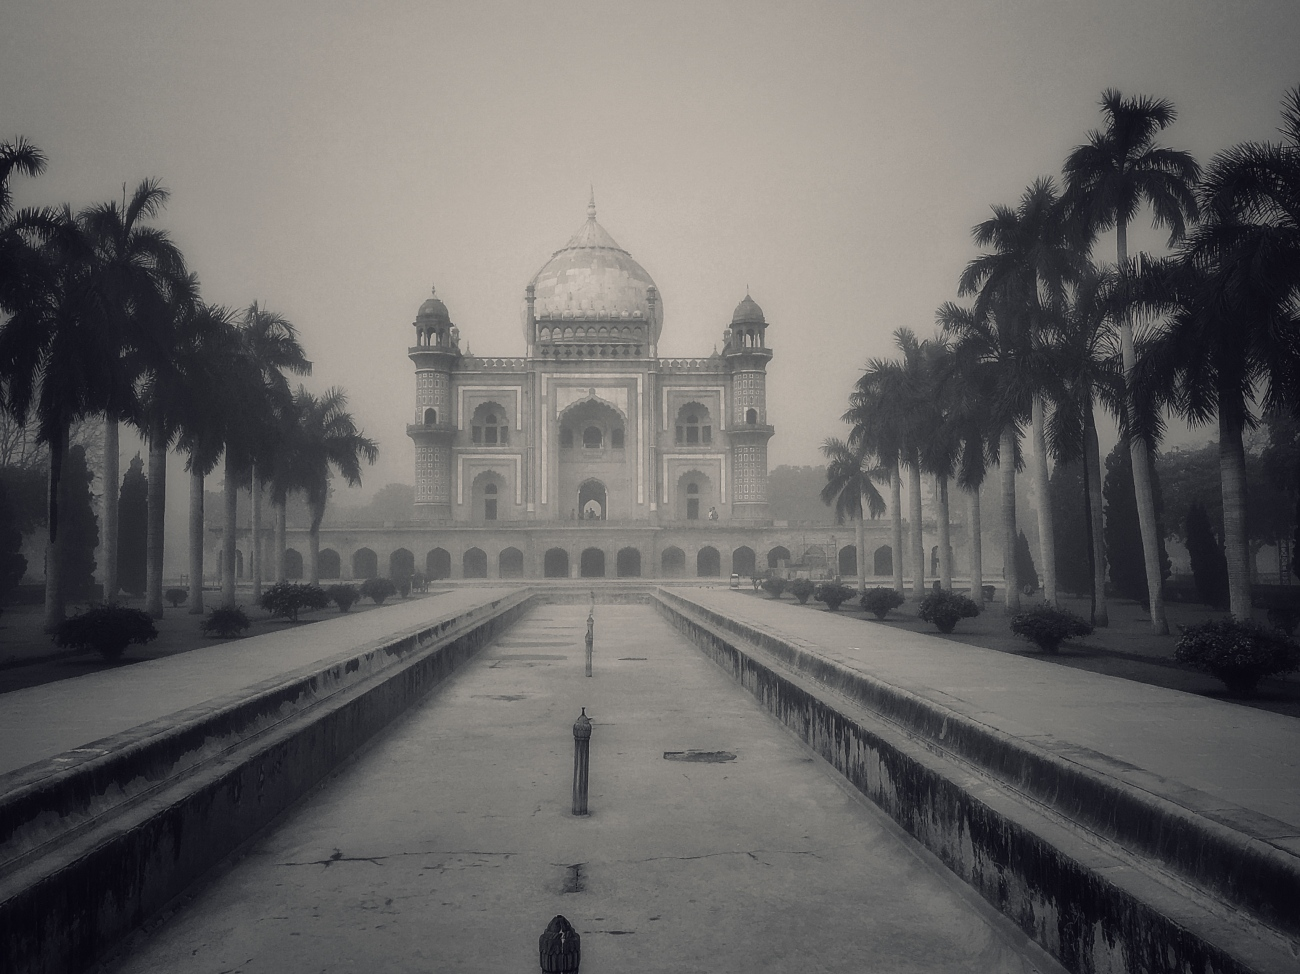 Safdarjung's Tomb on a Misty Morning